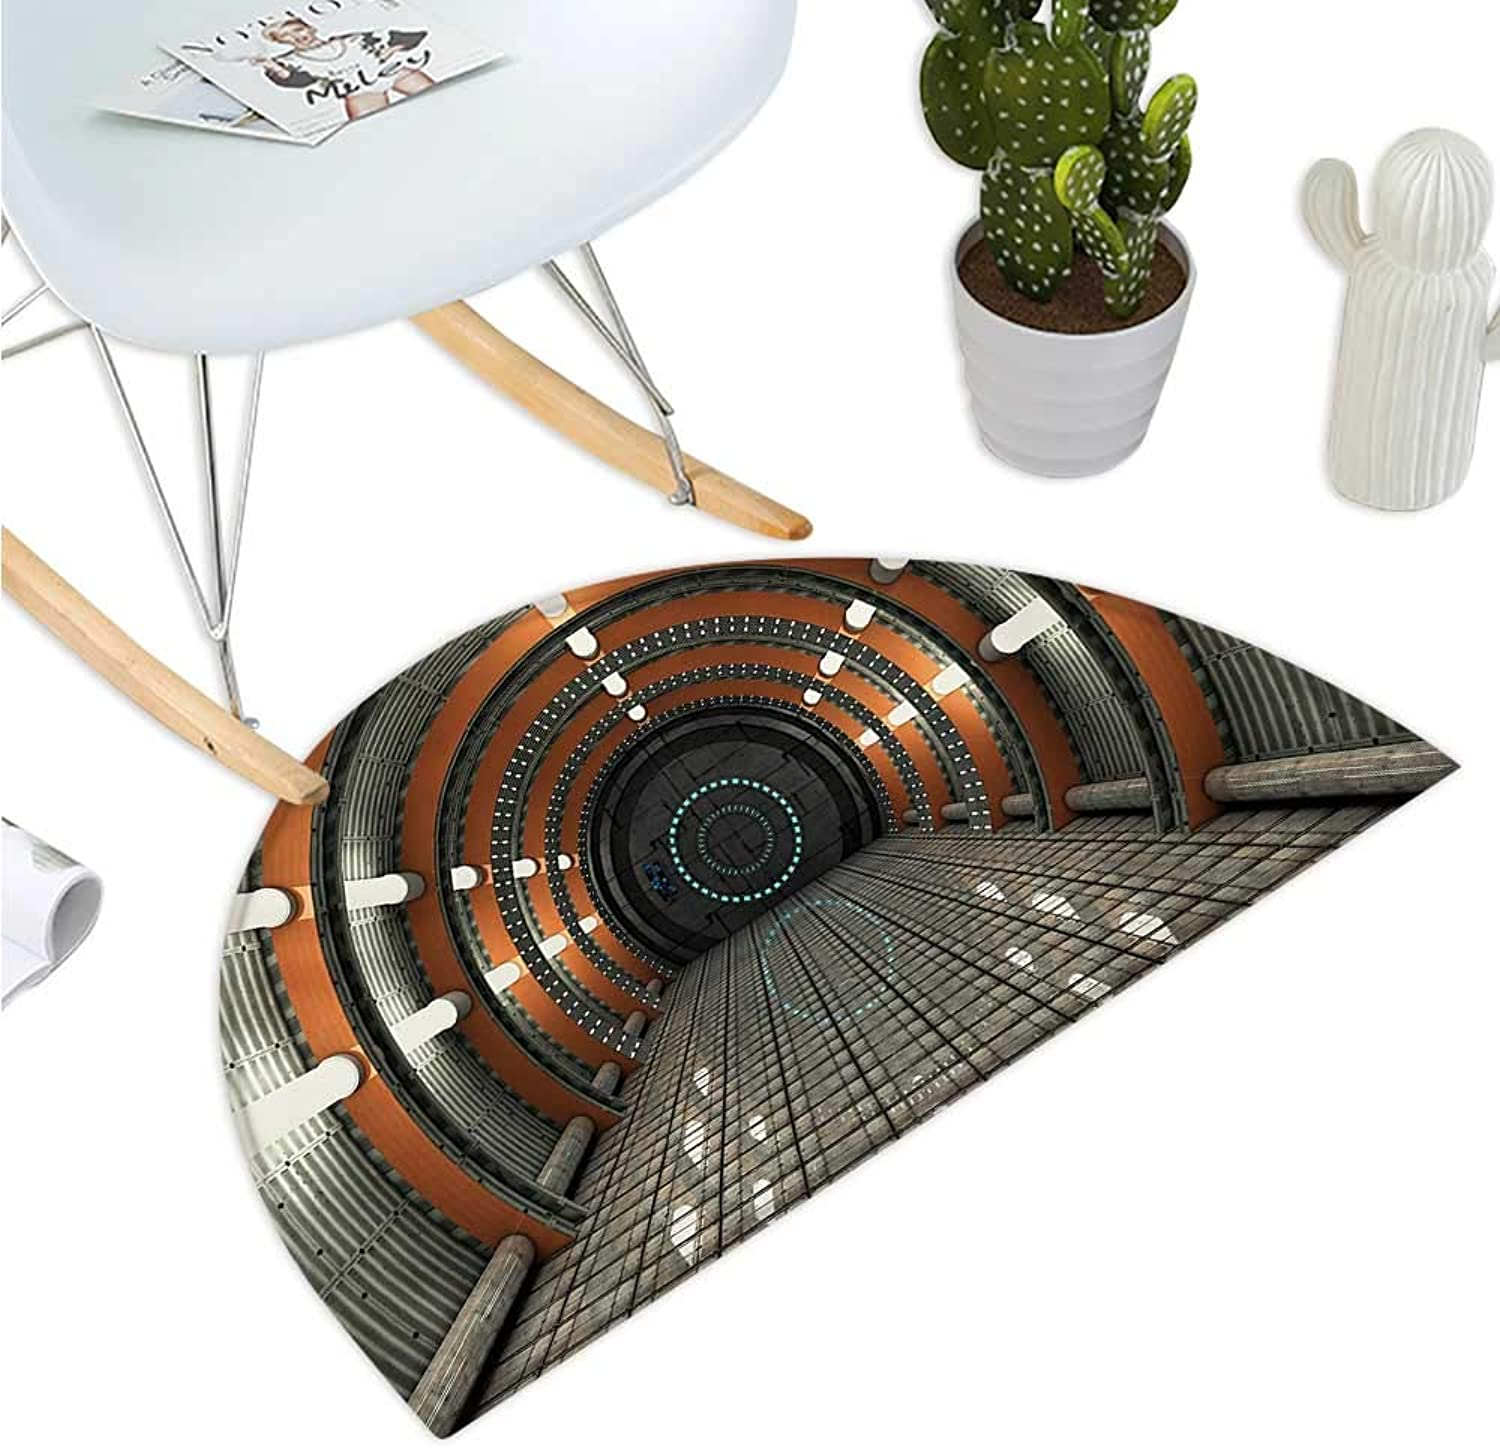 Outer Space Semicircular Cushion Digital Orbital Station Room Artificial Satellite in Earth Navigation Center Entry Door Mat H 35.4  xD 53.1  Multicolor